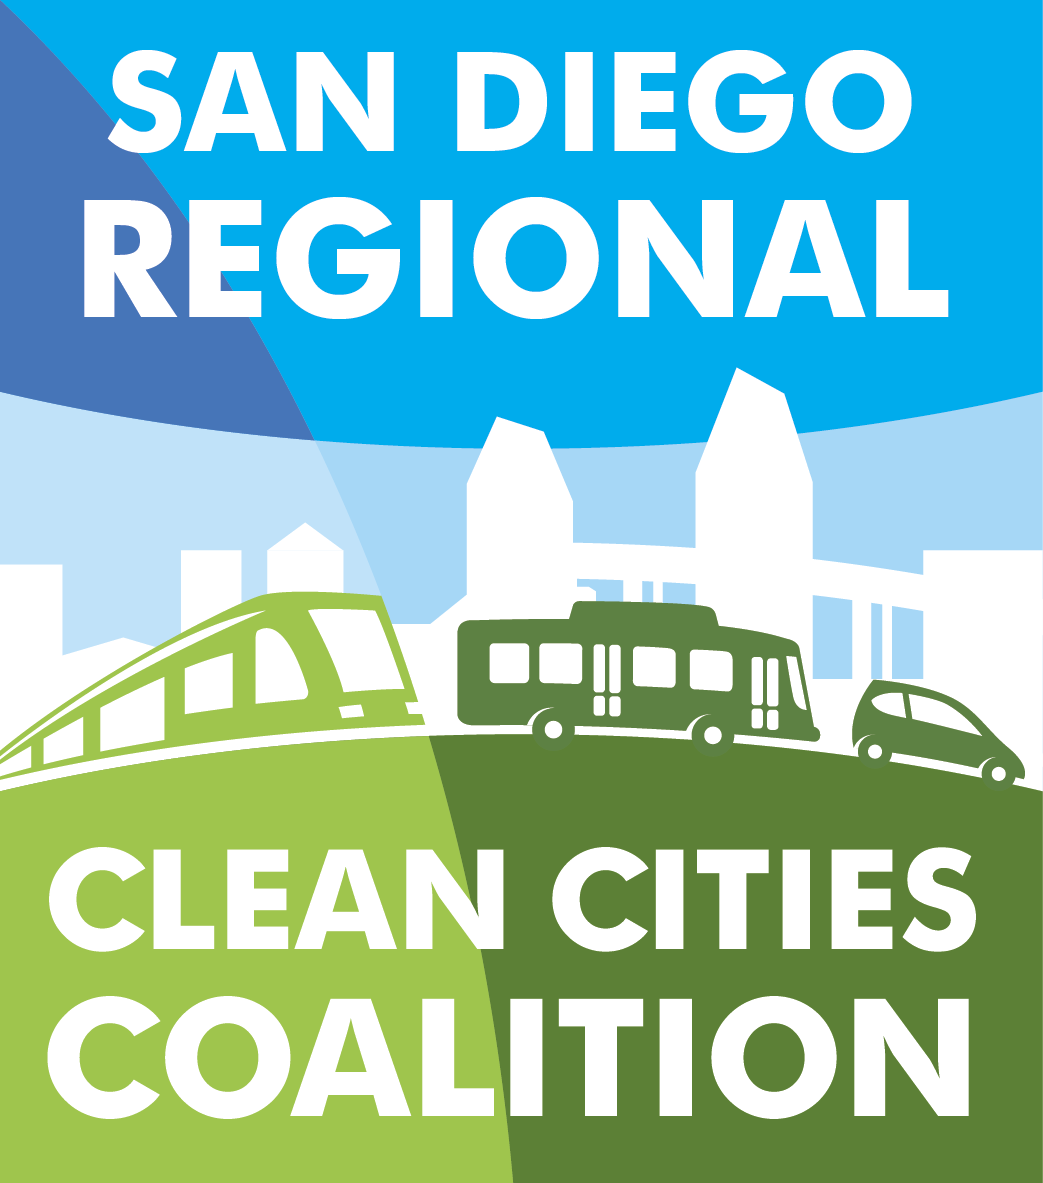 San Diego Regional Clean Cities Coalition